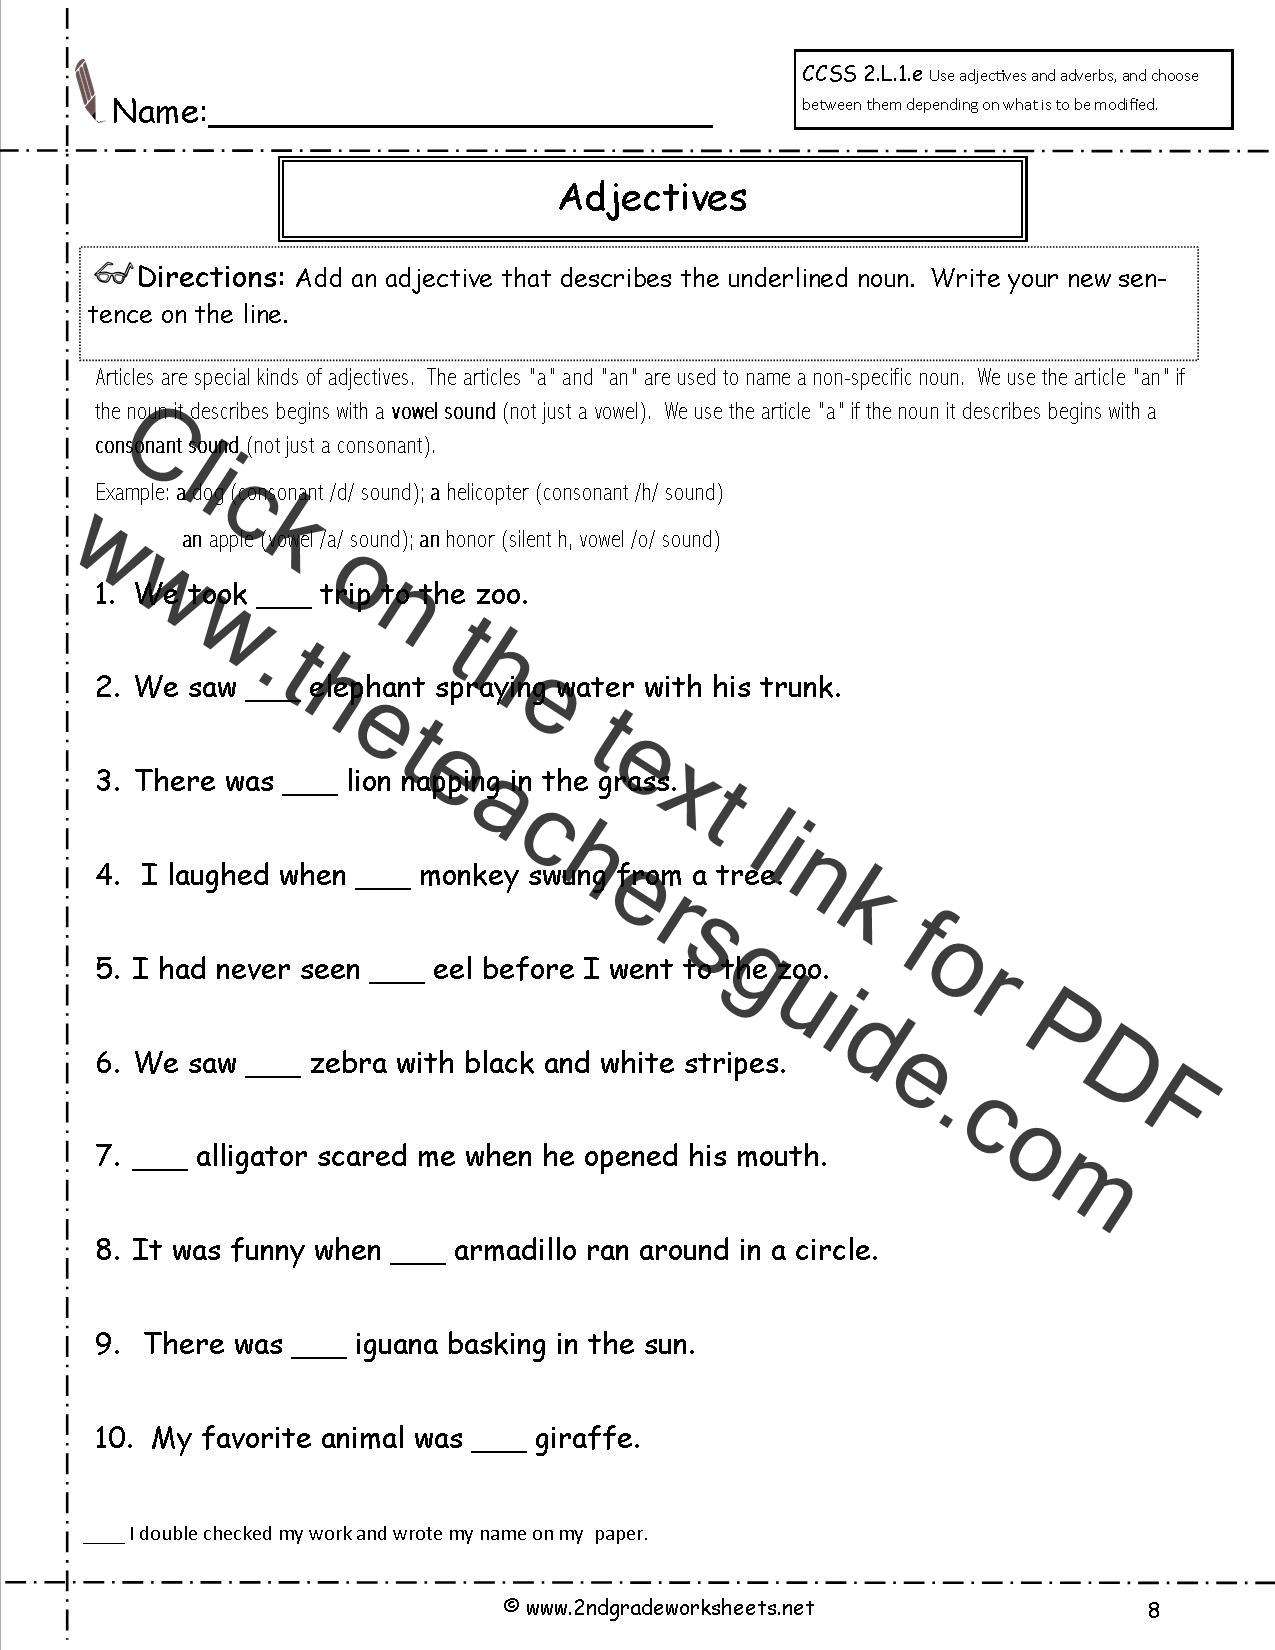 Worksheets Grade 5 Grammar Worksheets free languagegrammar worksheets and printouts adjectives worksheets